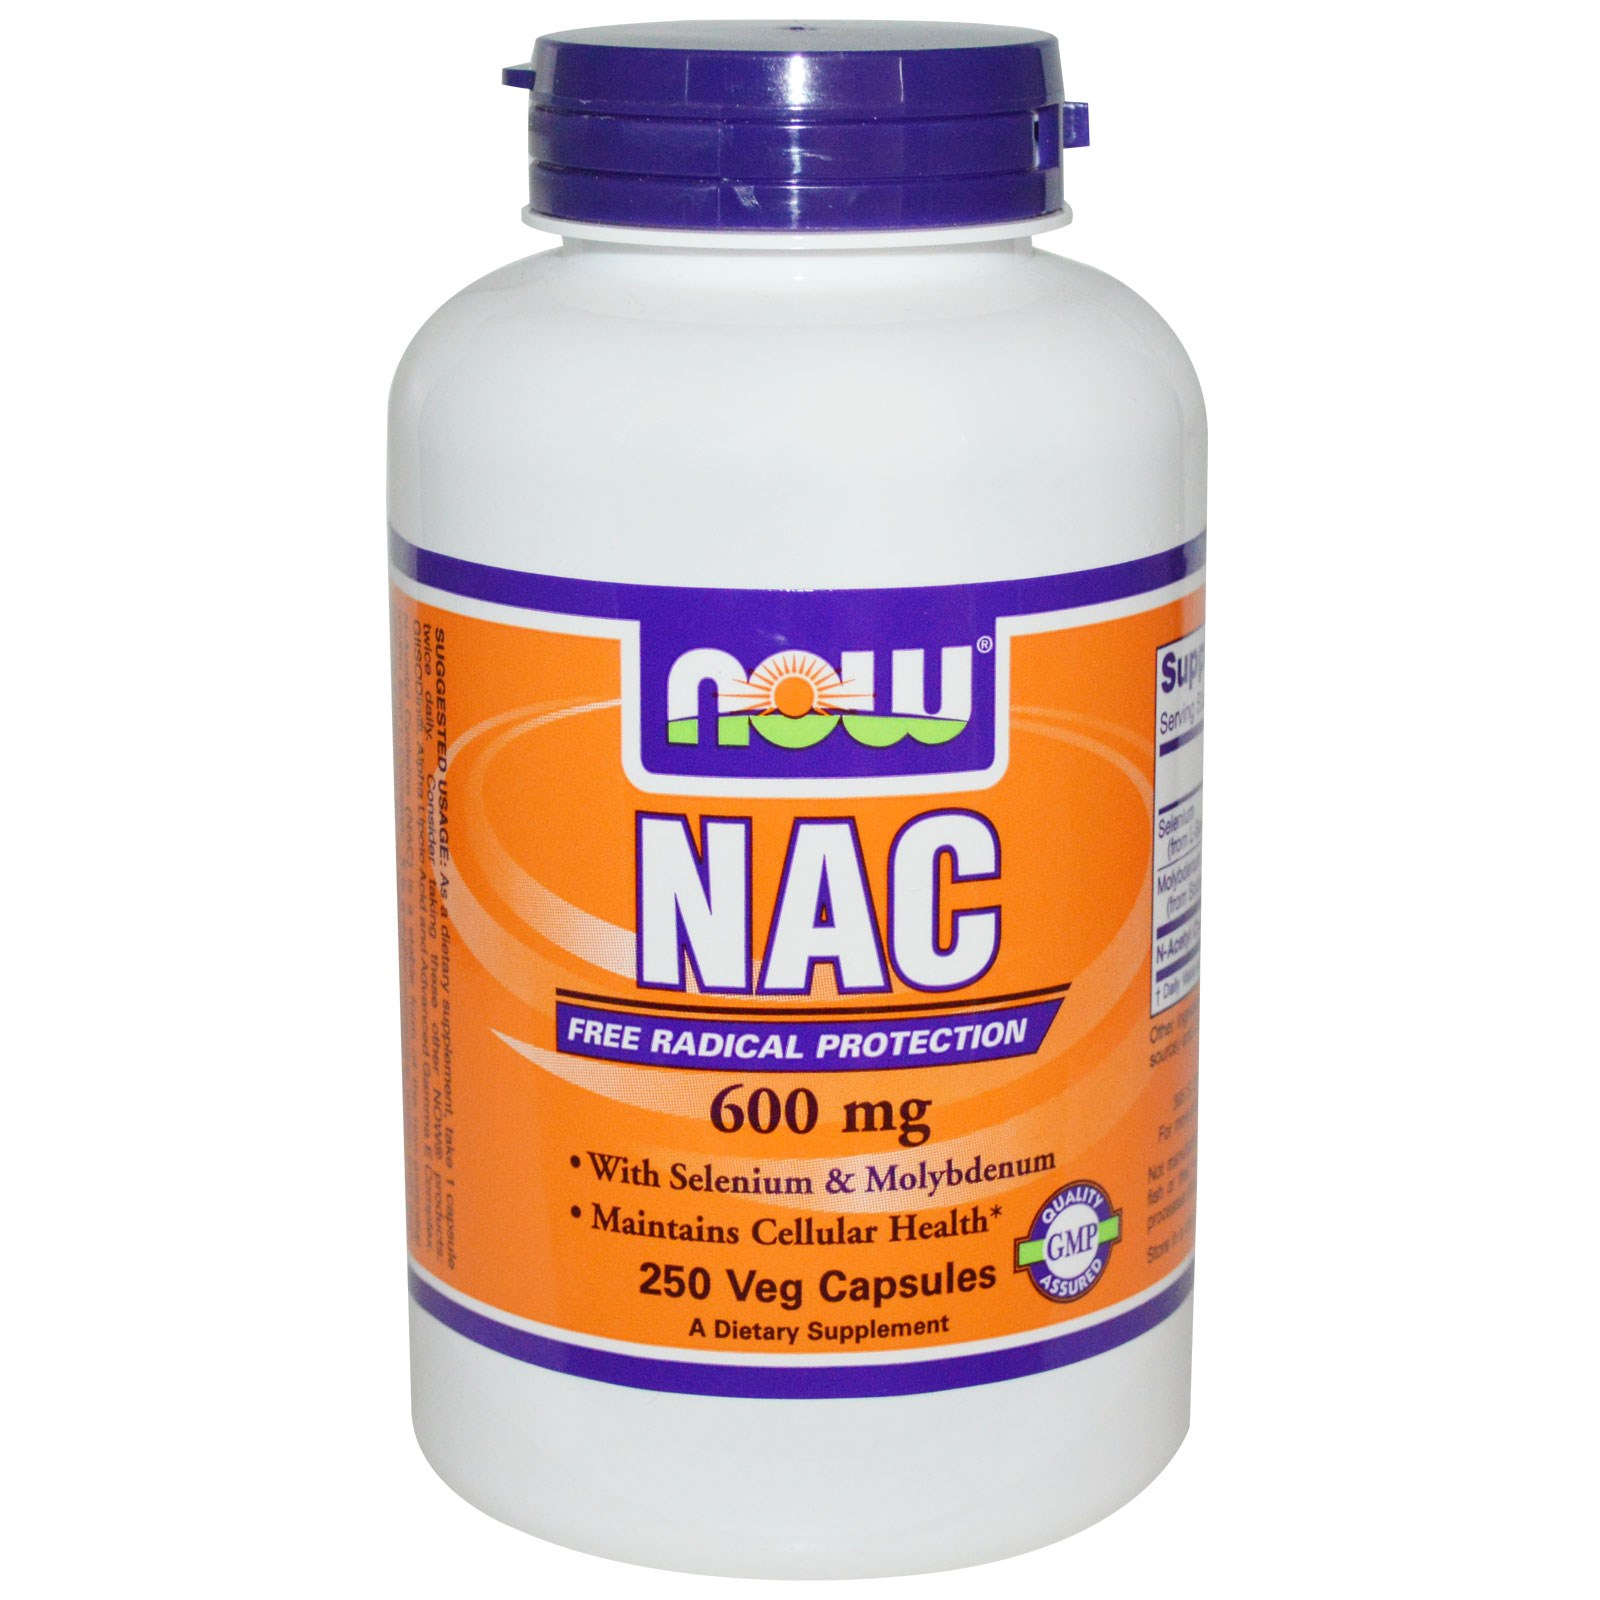 What is nac good for